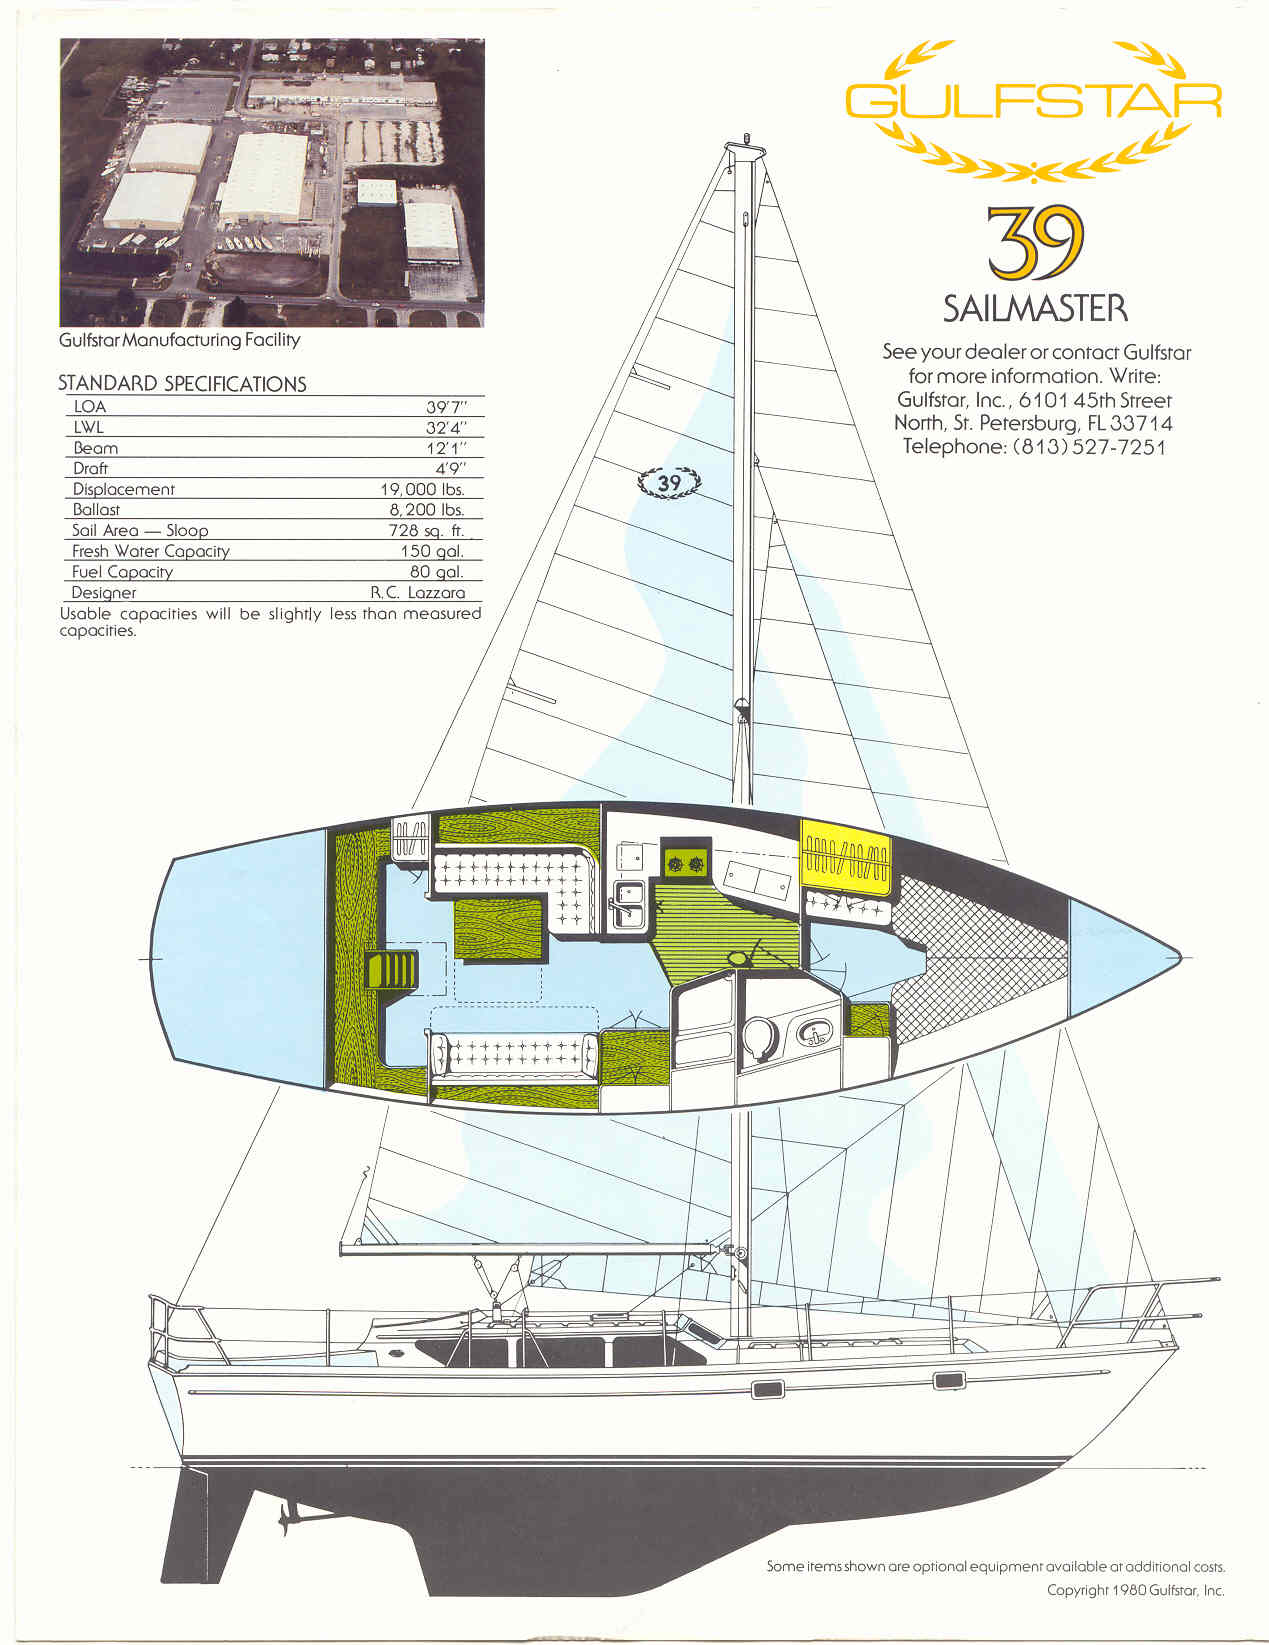 Gulfstar39Brochure pg4 boat model gulfstar sailboats  at cos-gaming.co